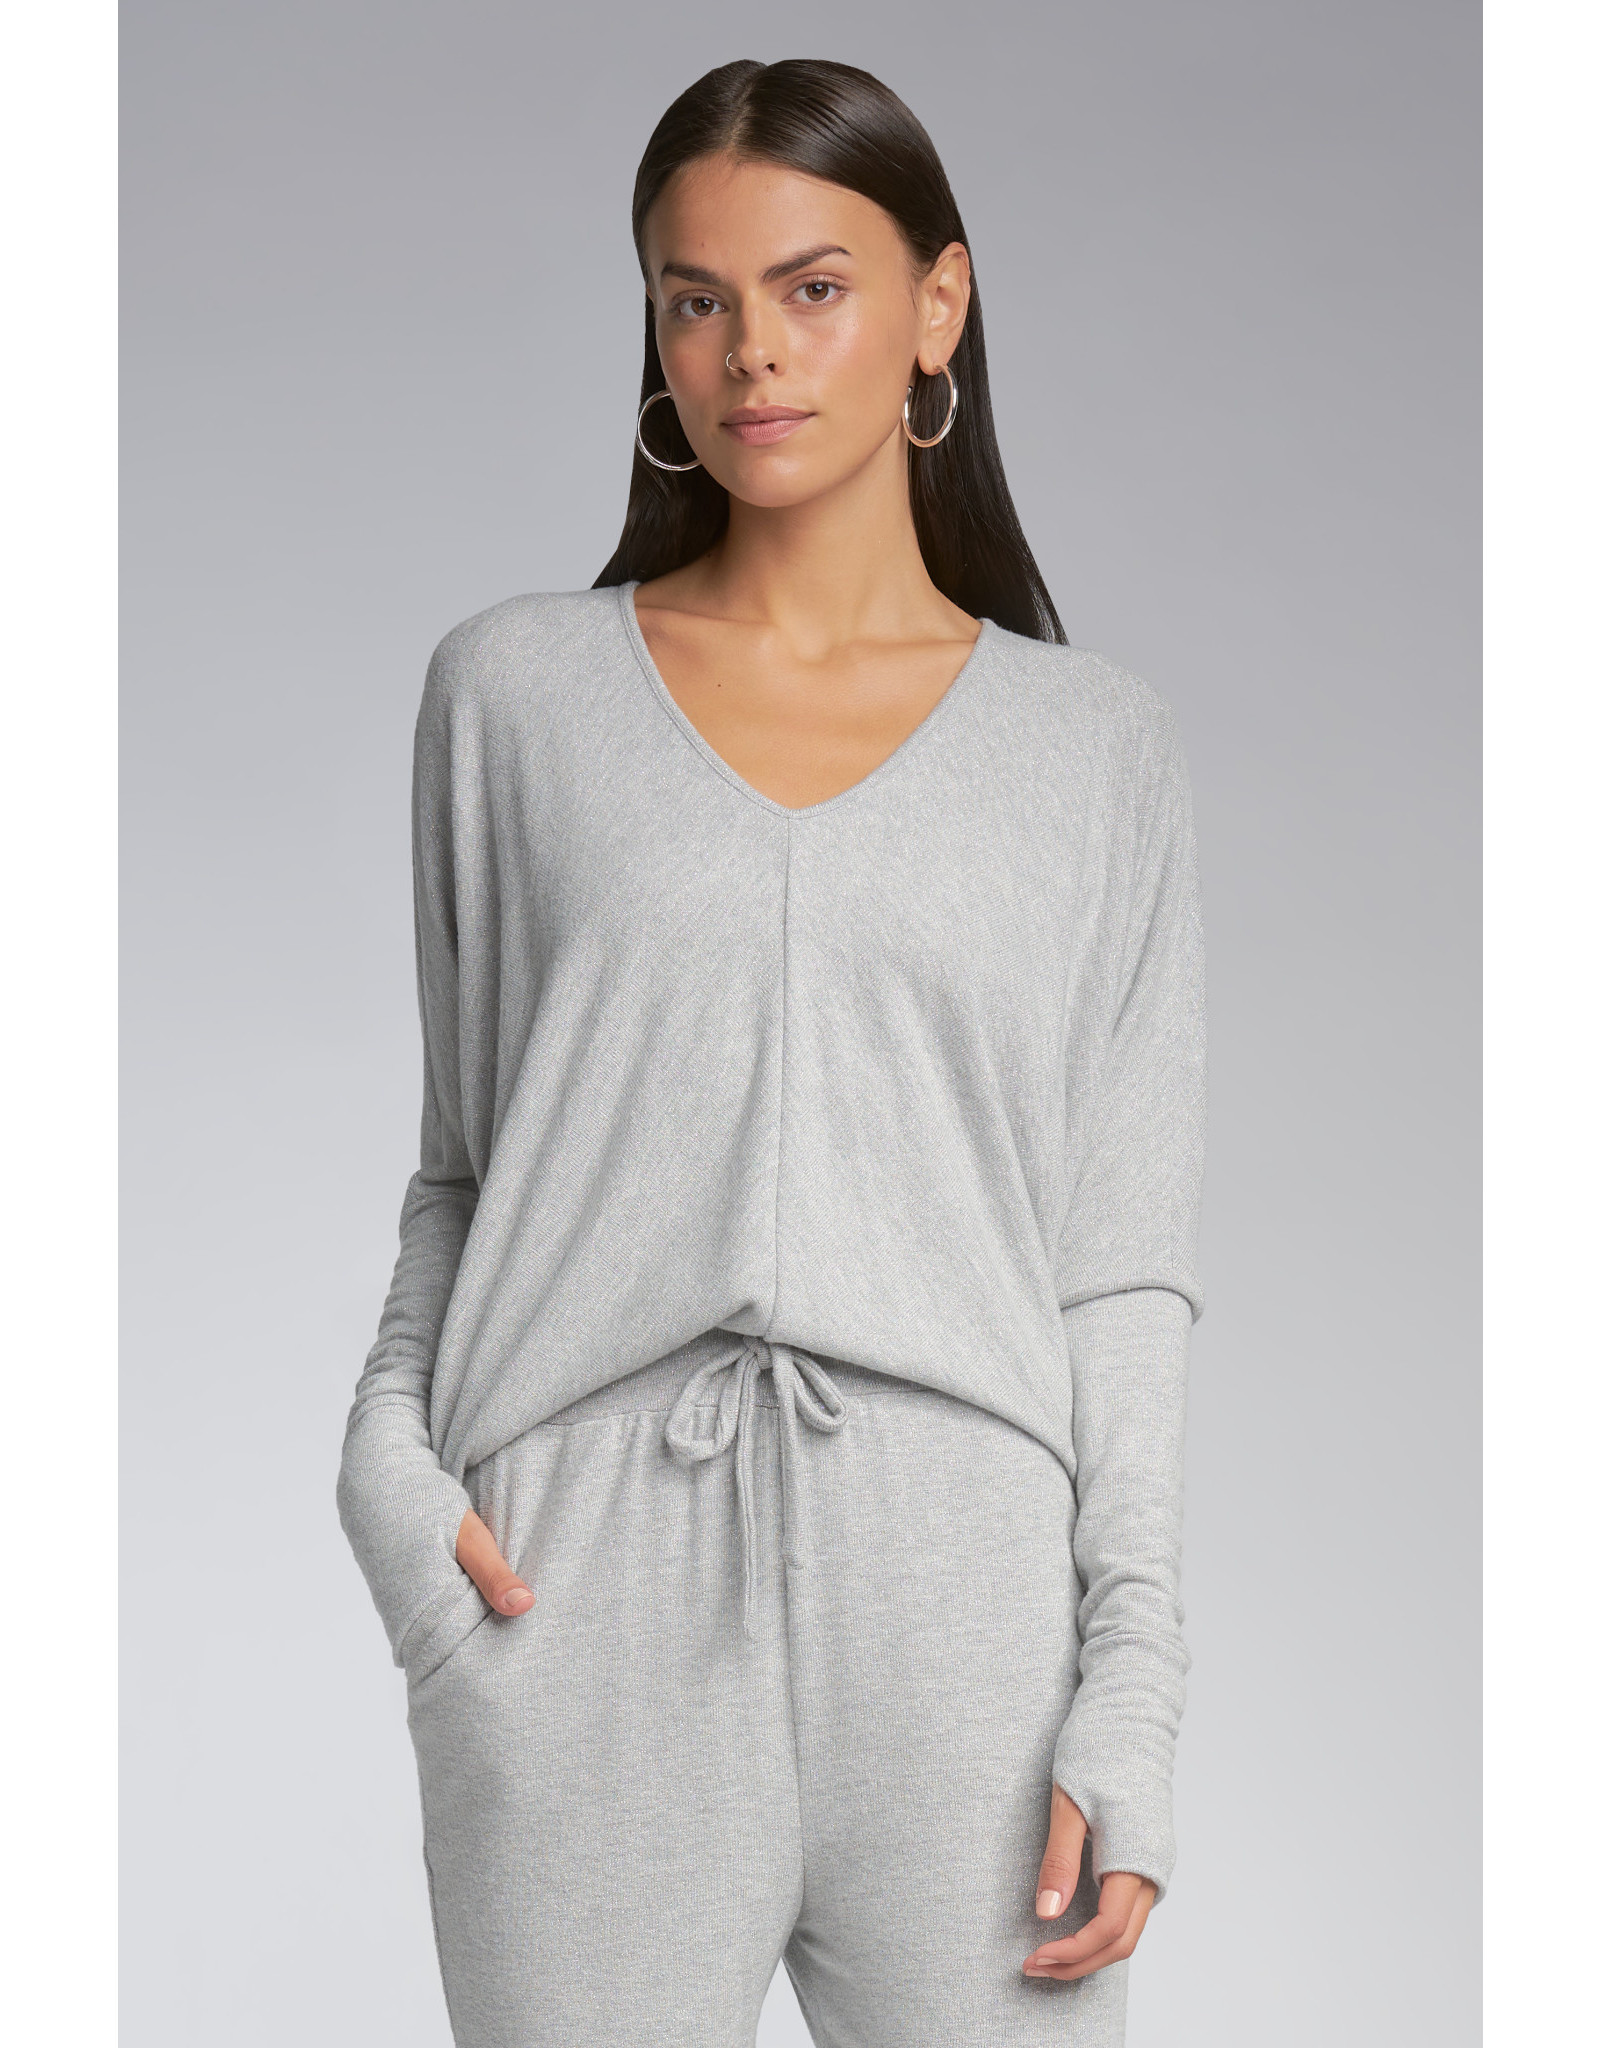 SEN Collection Tebow Oversized Top